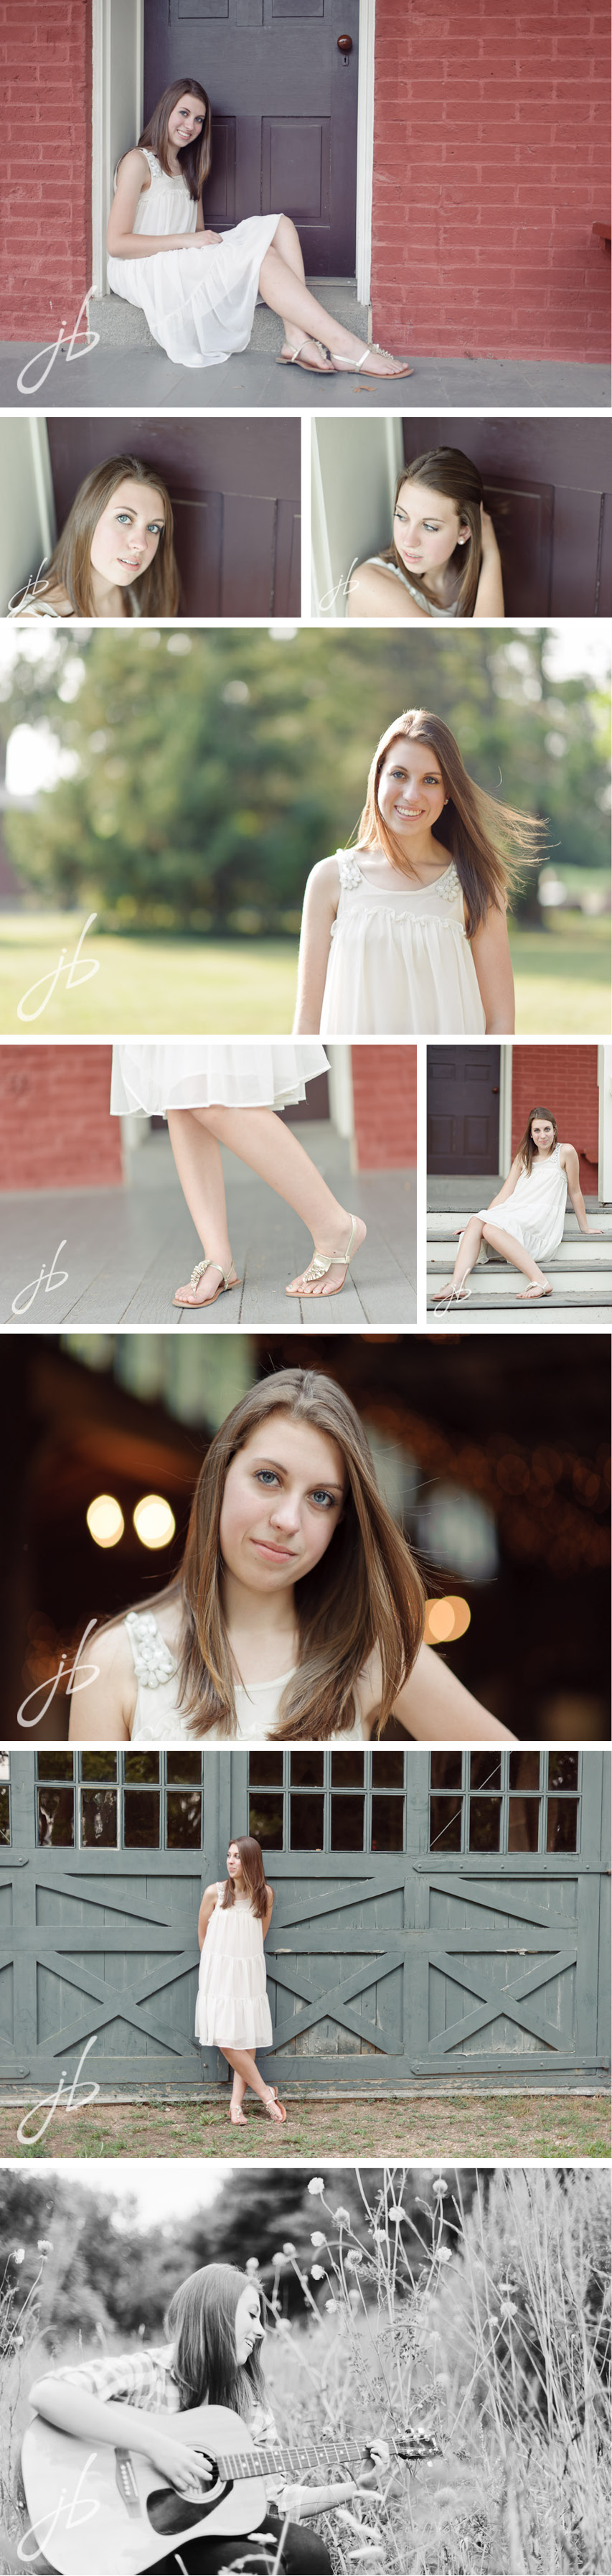 Lancaster PA Senior portrait Photography by Jeremy Bischoff Photography 003